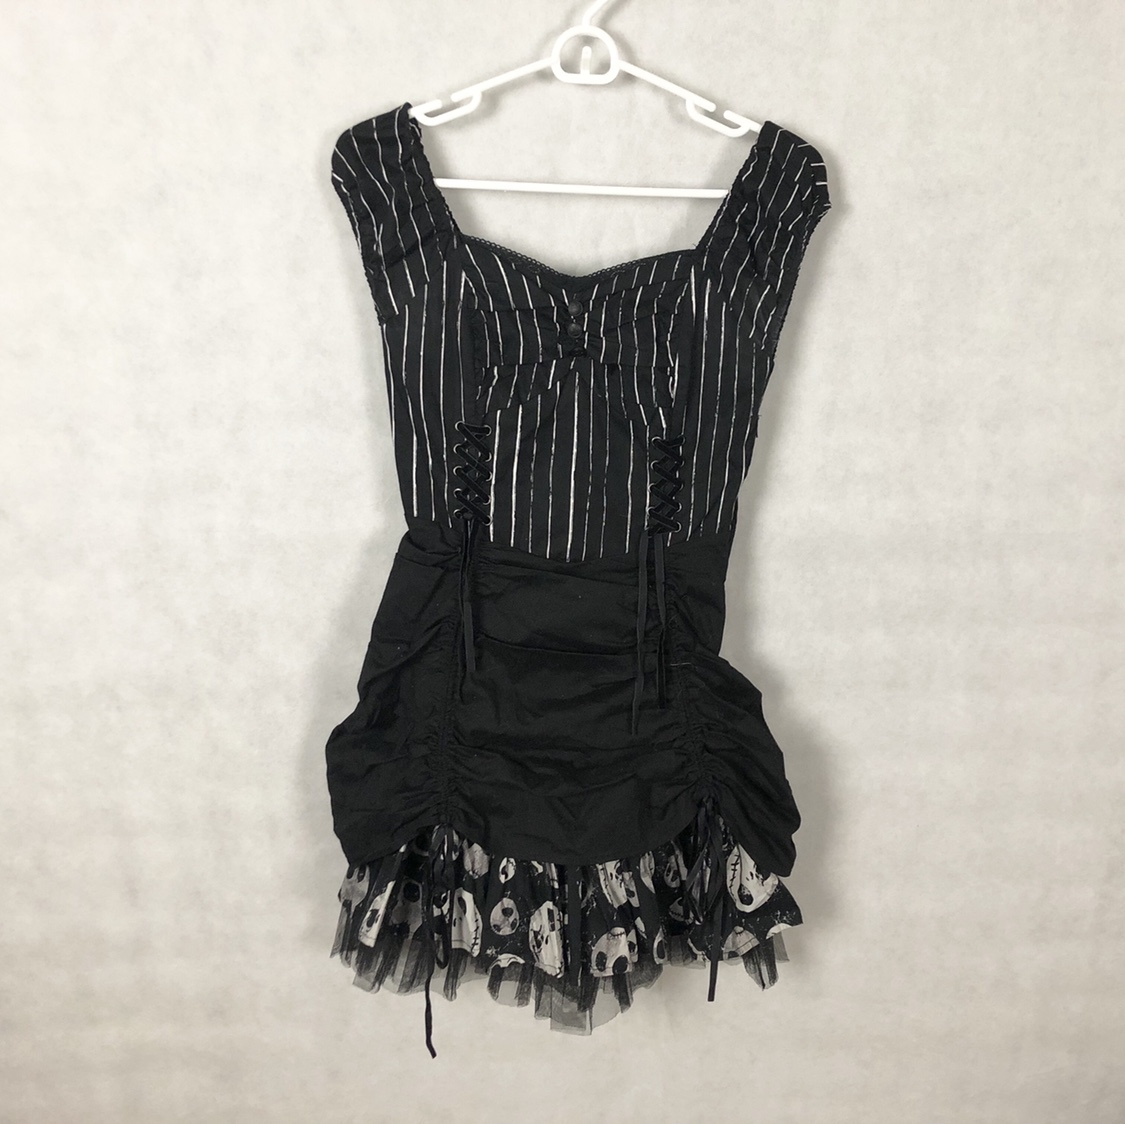 Hot Topic Nightmare Before Christmas Dress.Hot Topic Nightmare Before Christmas Dress Super Depop